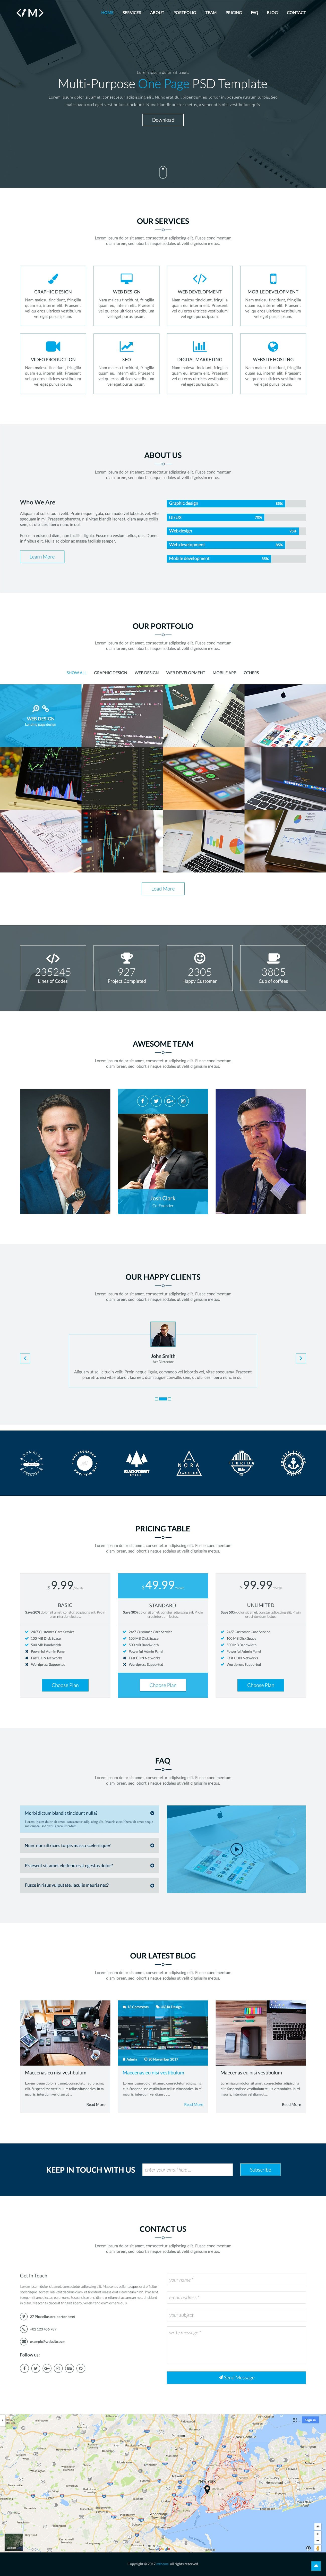 MTheme - Multi-Purpose One Page PSD Template Screenshot 1